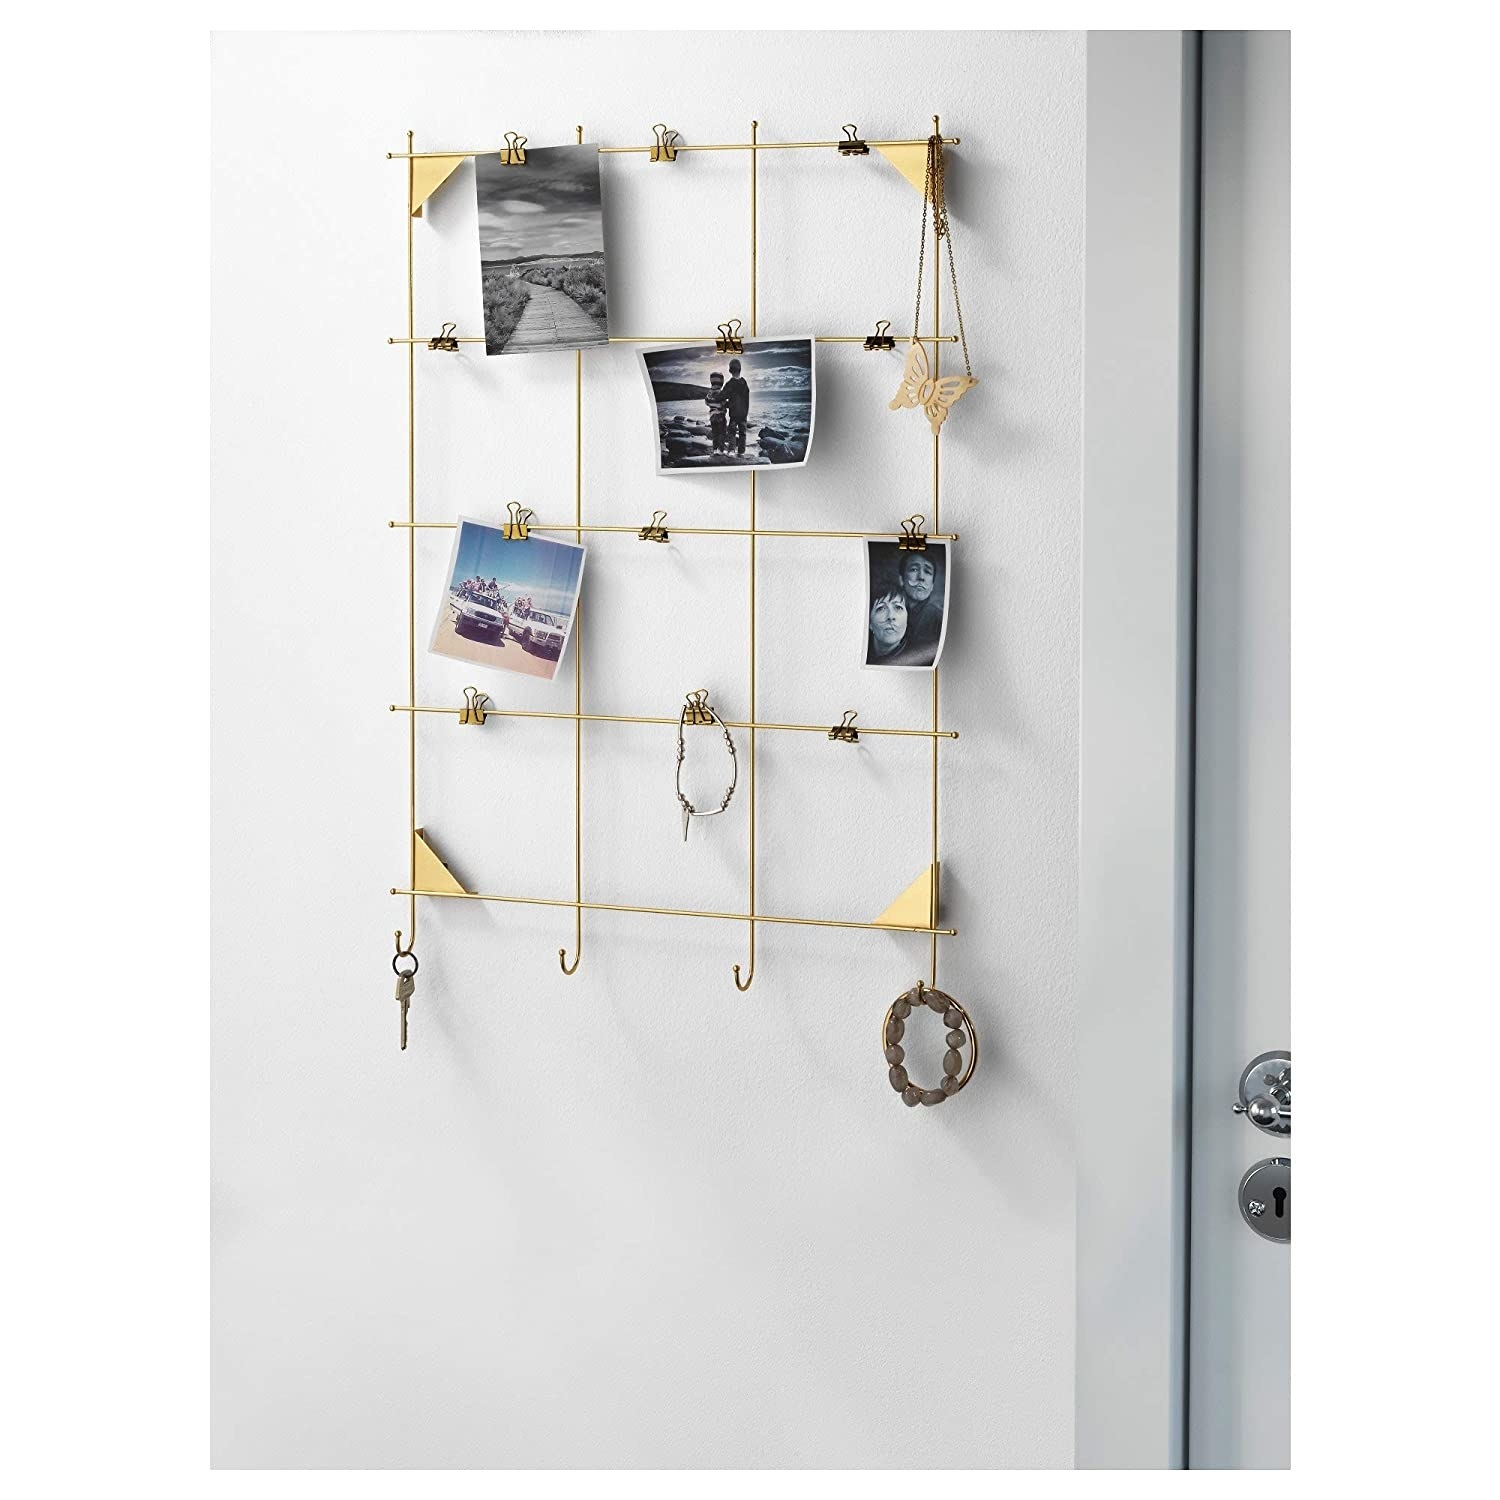 A brass wall grid with photographs, keys, and bracelets on it